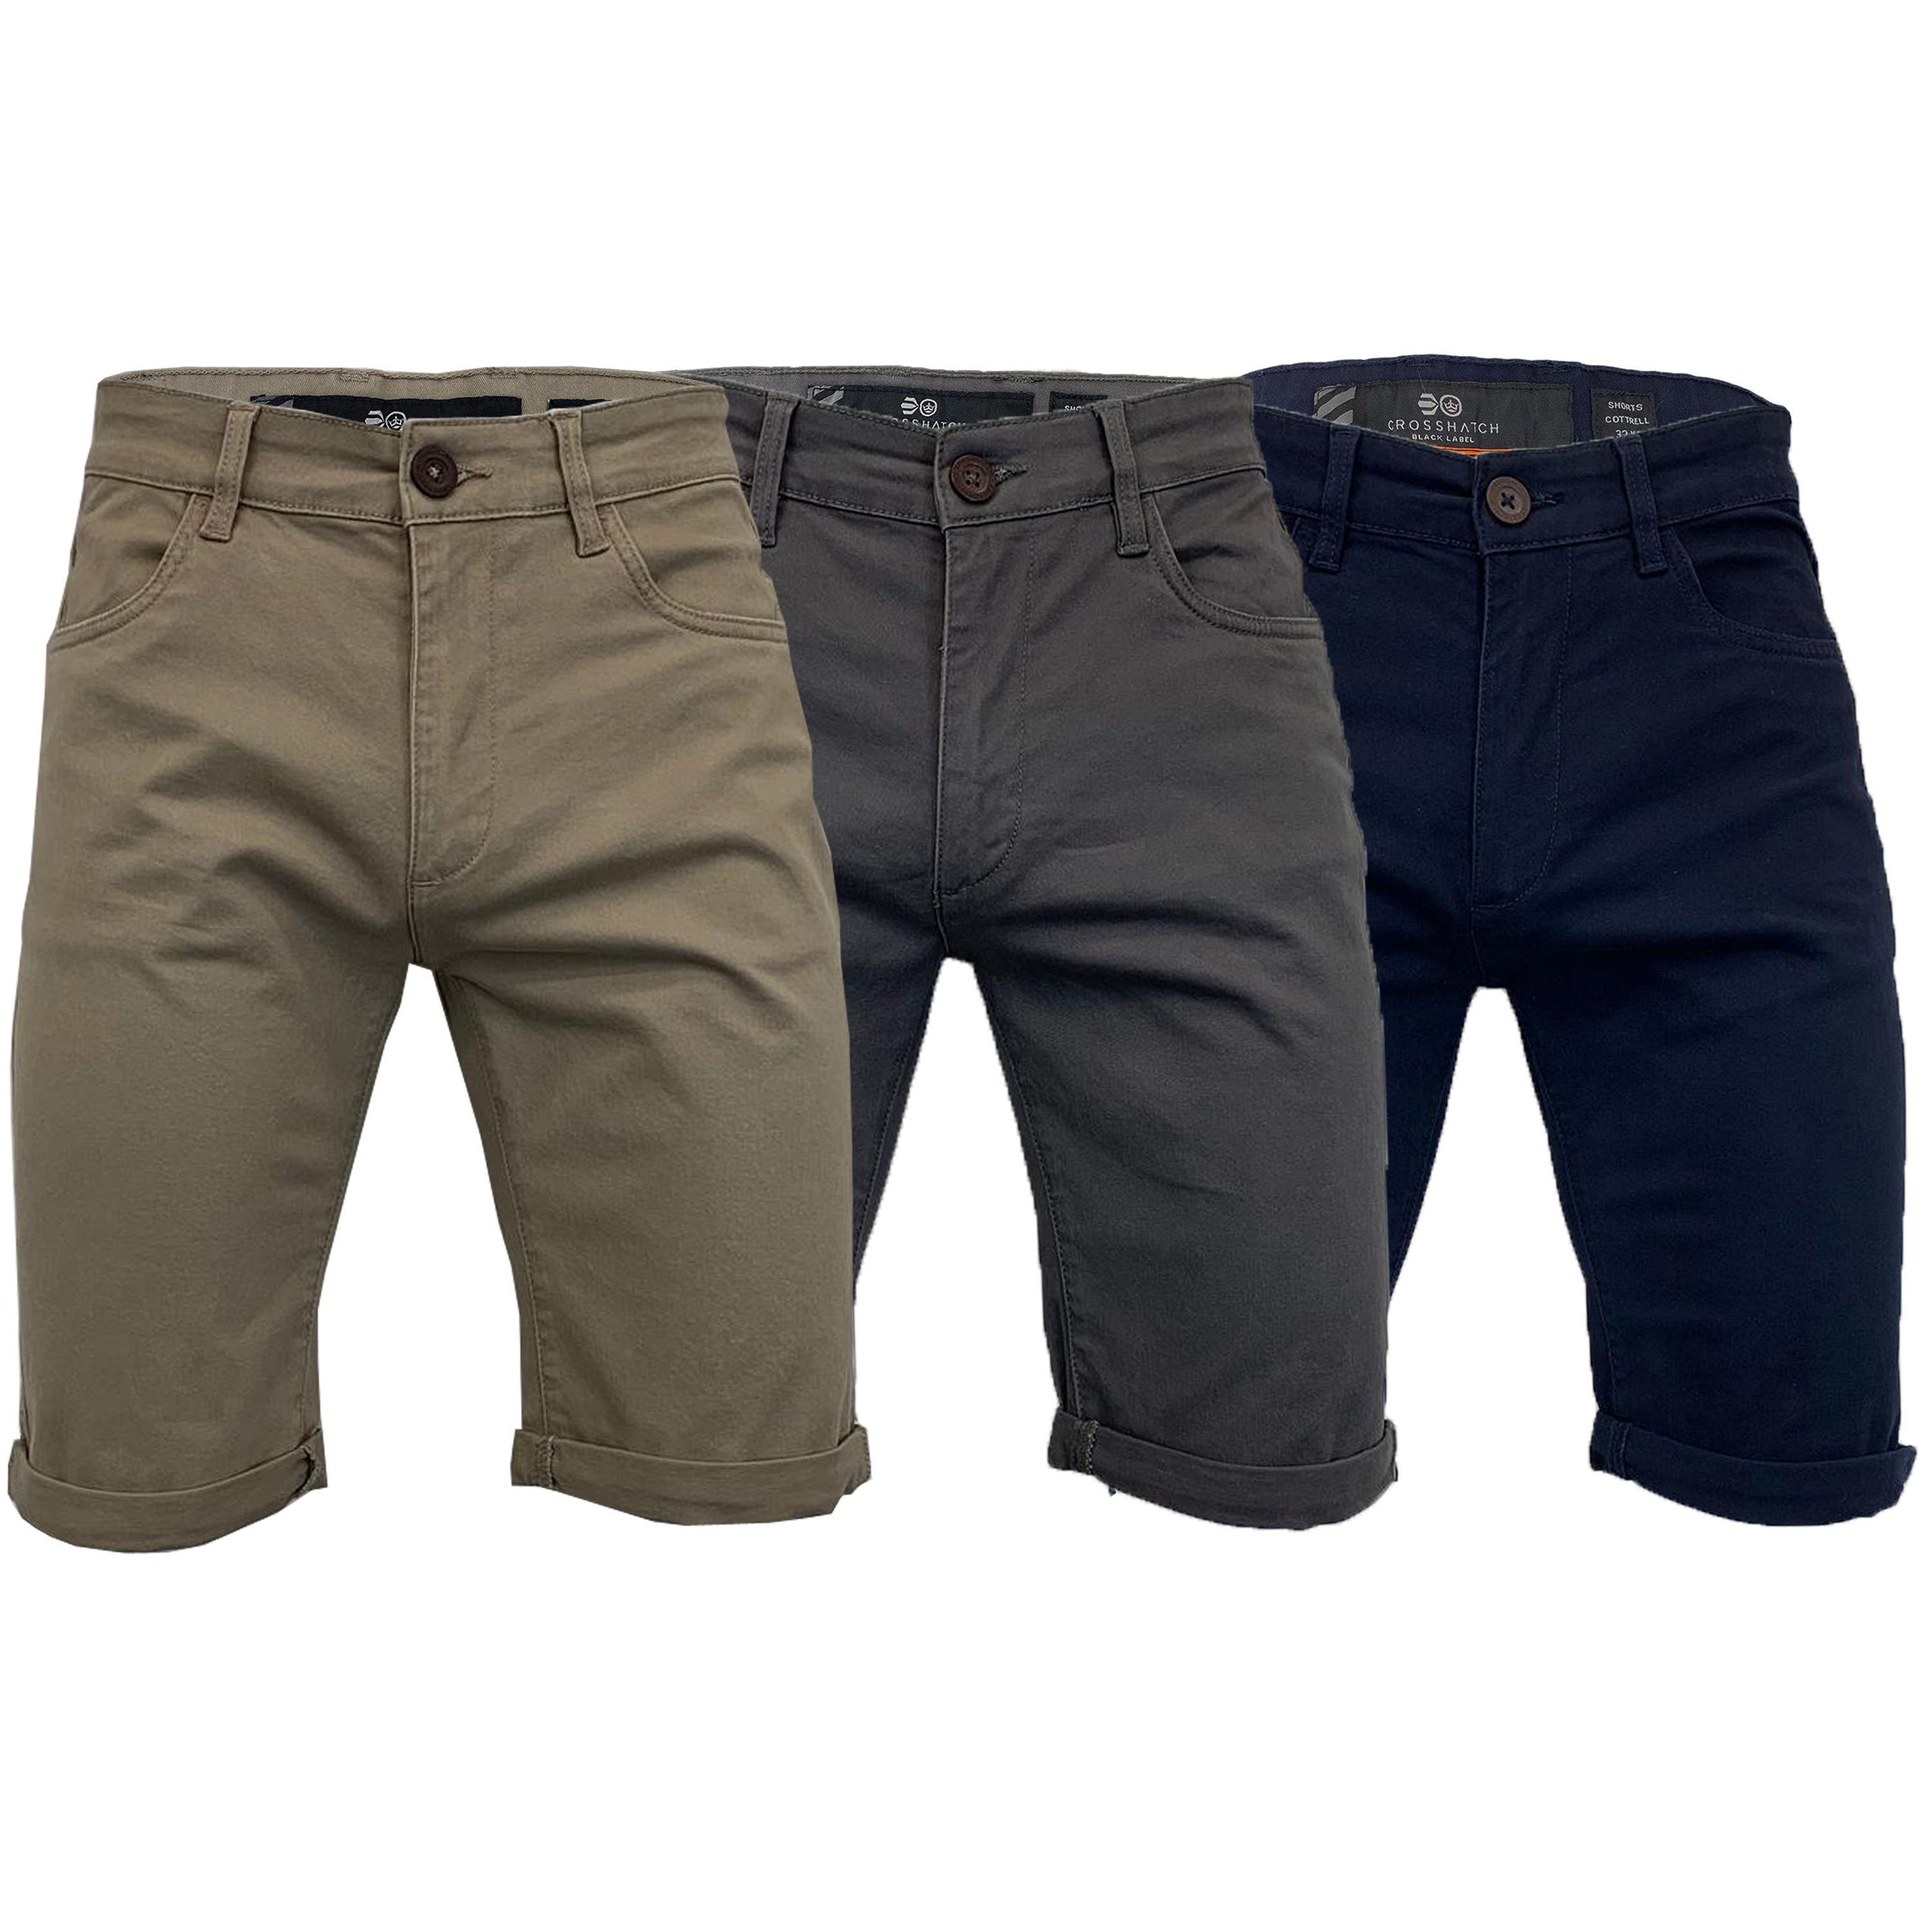 a377809ff69b Mens Chino Shorts Crosshatch Knee Length Roll Up COTTRELL Casual ...